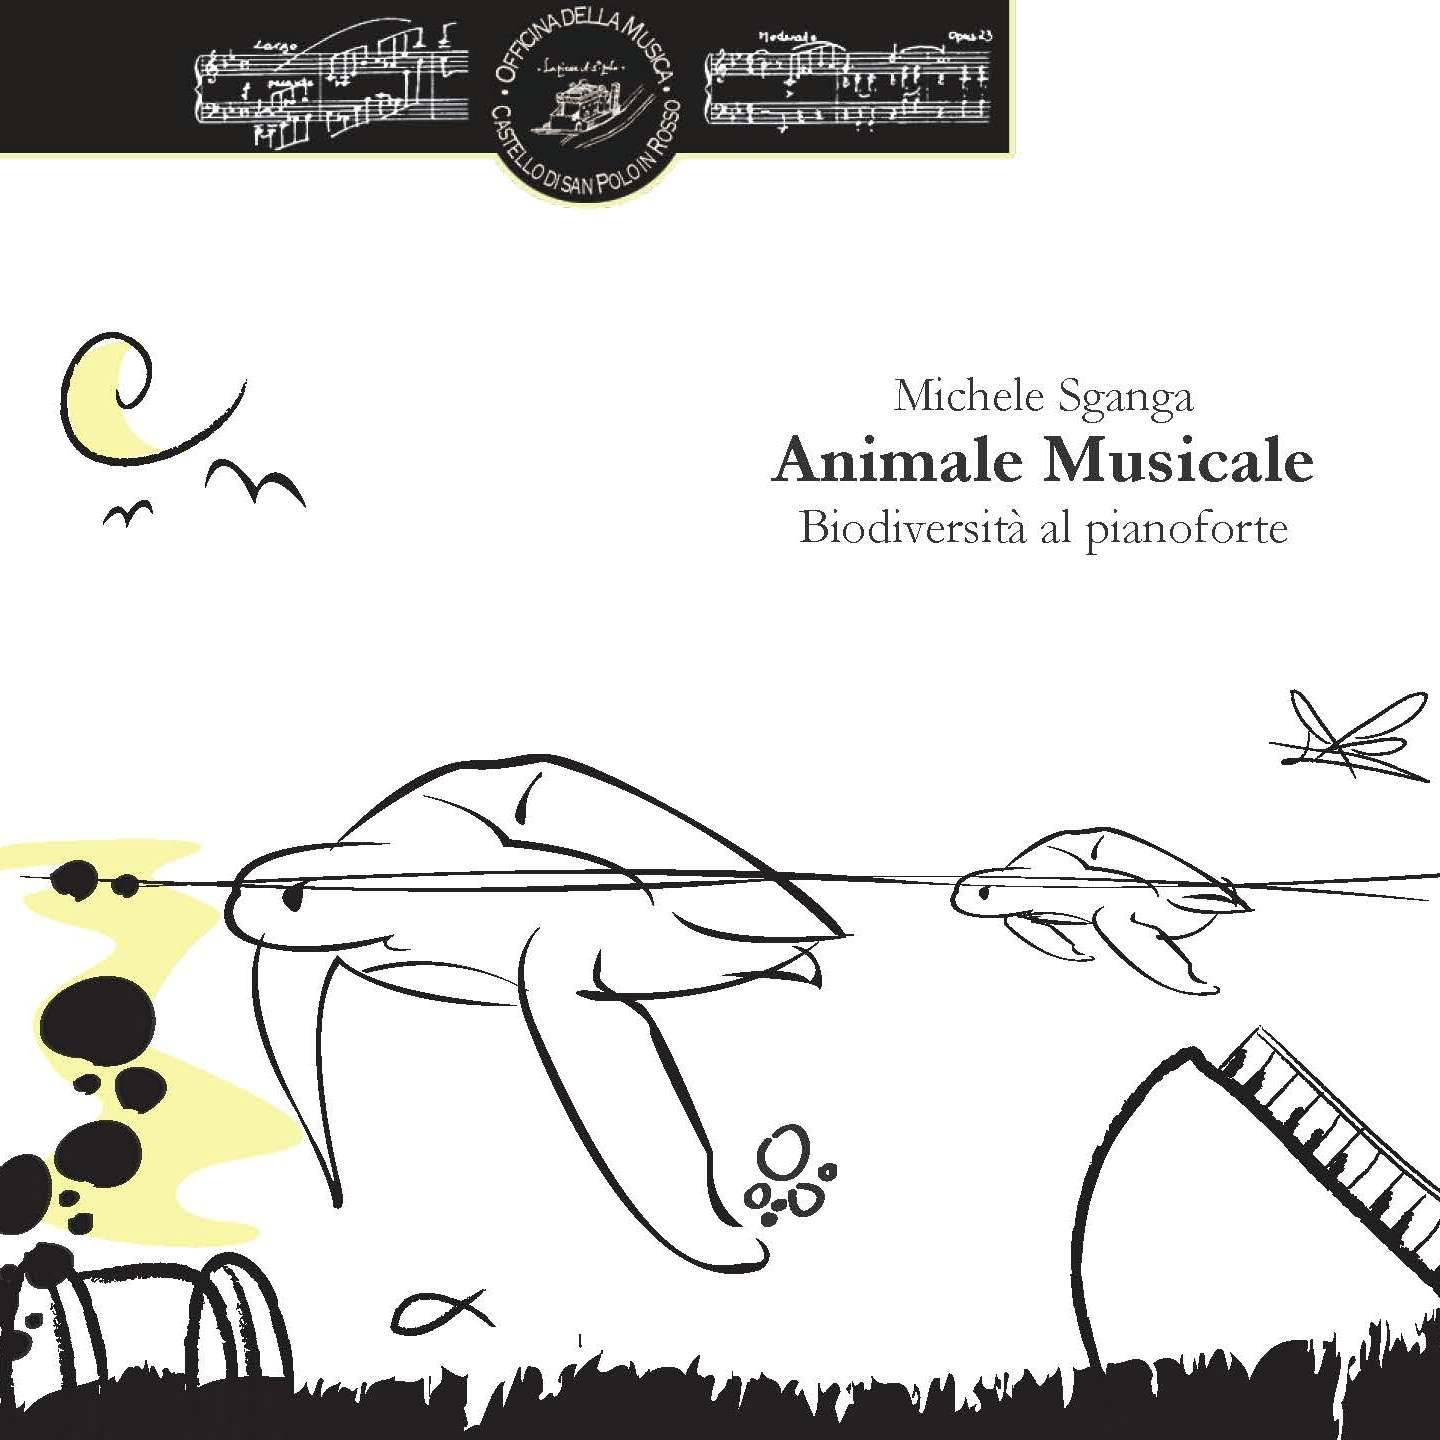 Animale Musicale